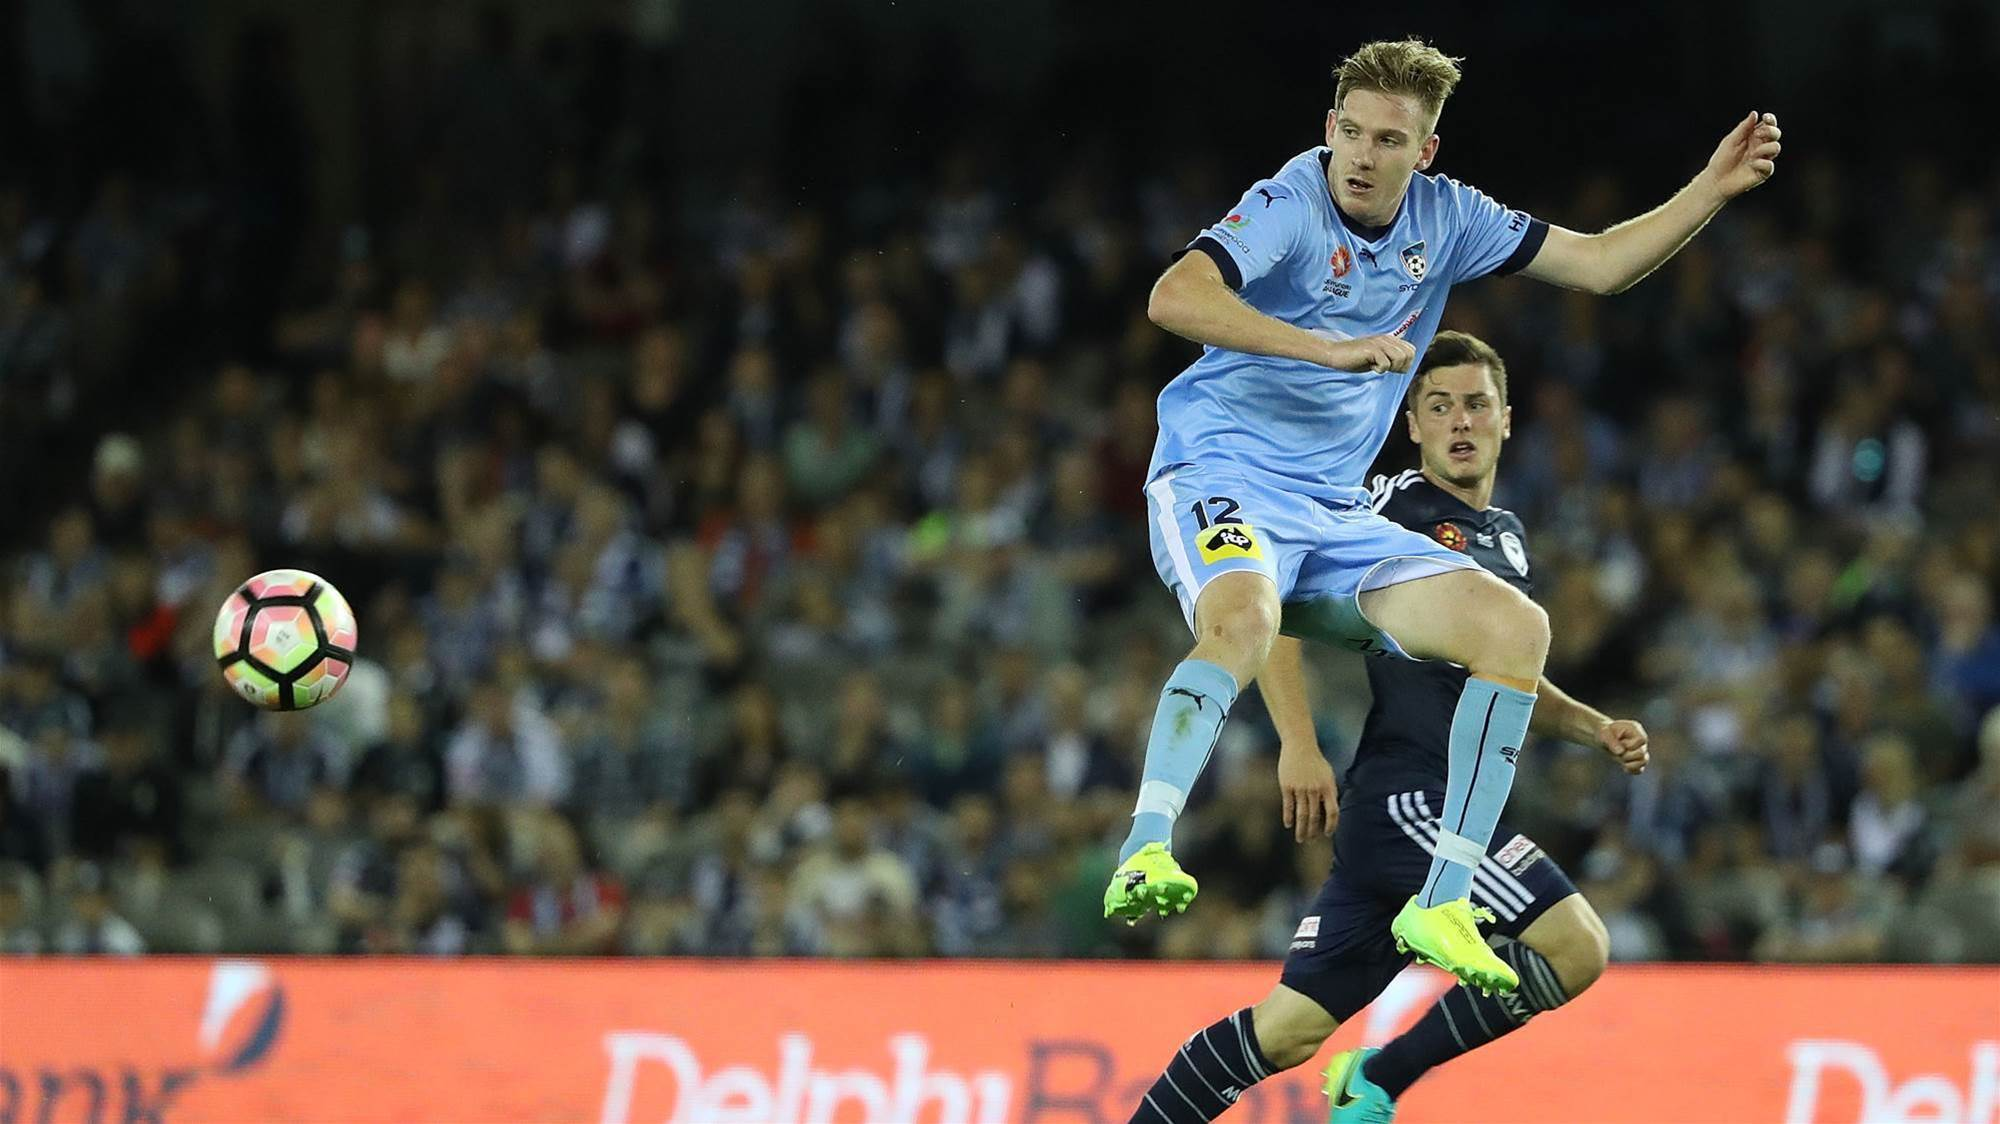 Sydney FC: Defender re-signs, striker exits